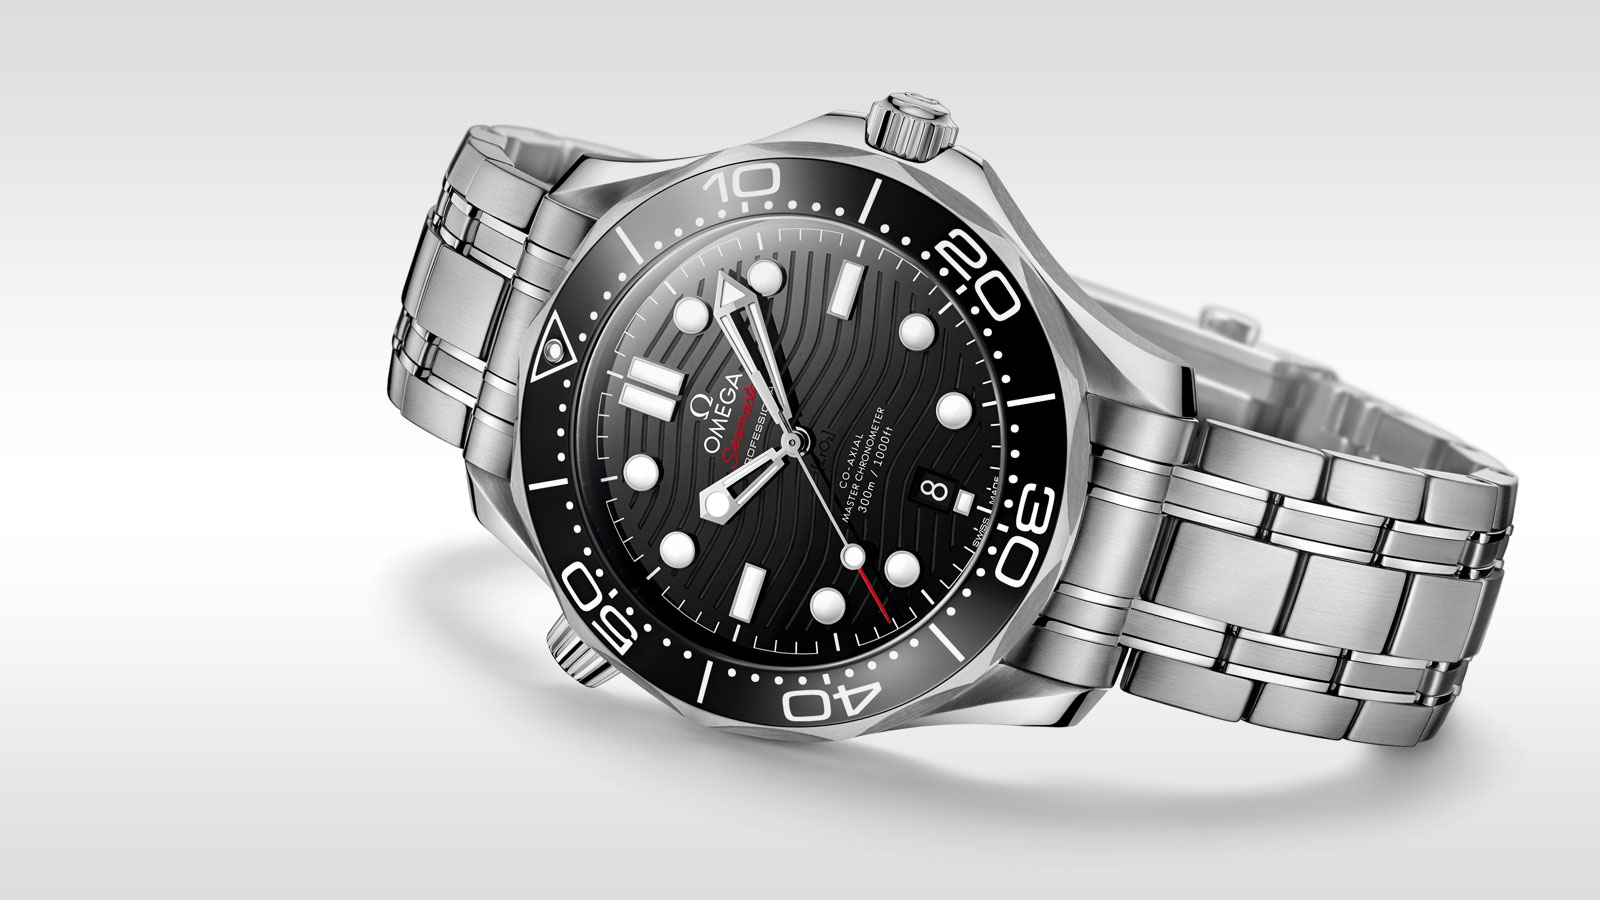 Seamaster Diver 300 M Diver 300M Omega Co‑Axial Master Chronometer 42 mm - 210.30.42.20.01.001 - View 3